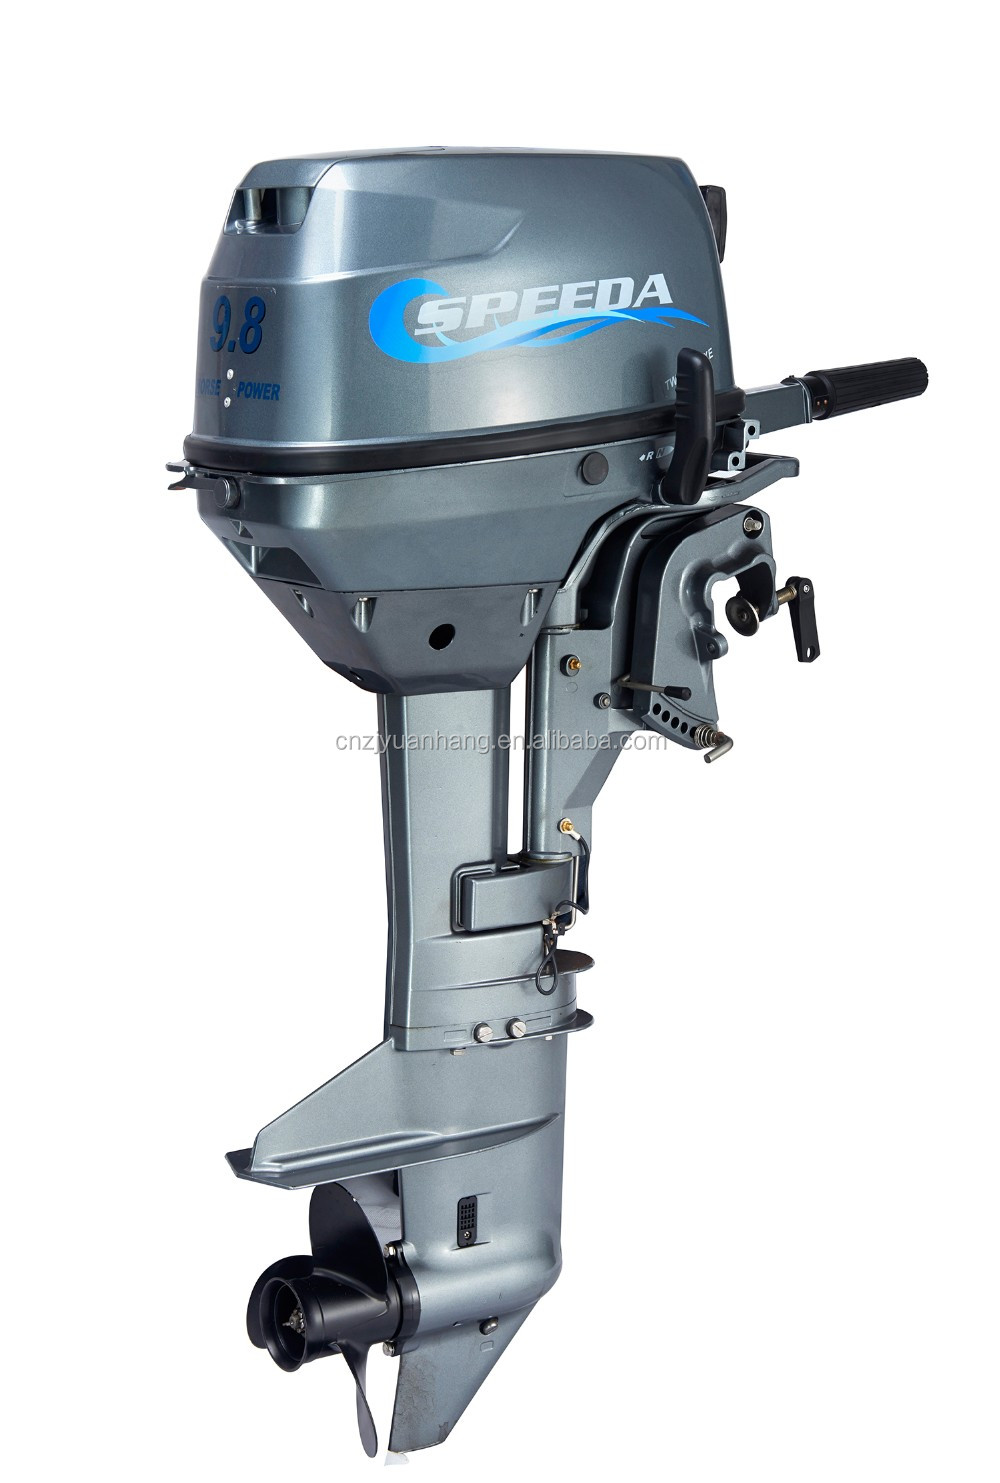 New condition 2 stroke outboard engine postion boat for New outboard boat motors